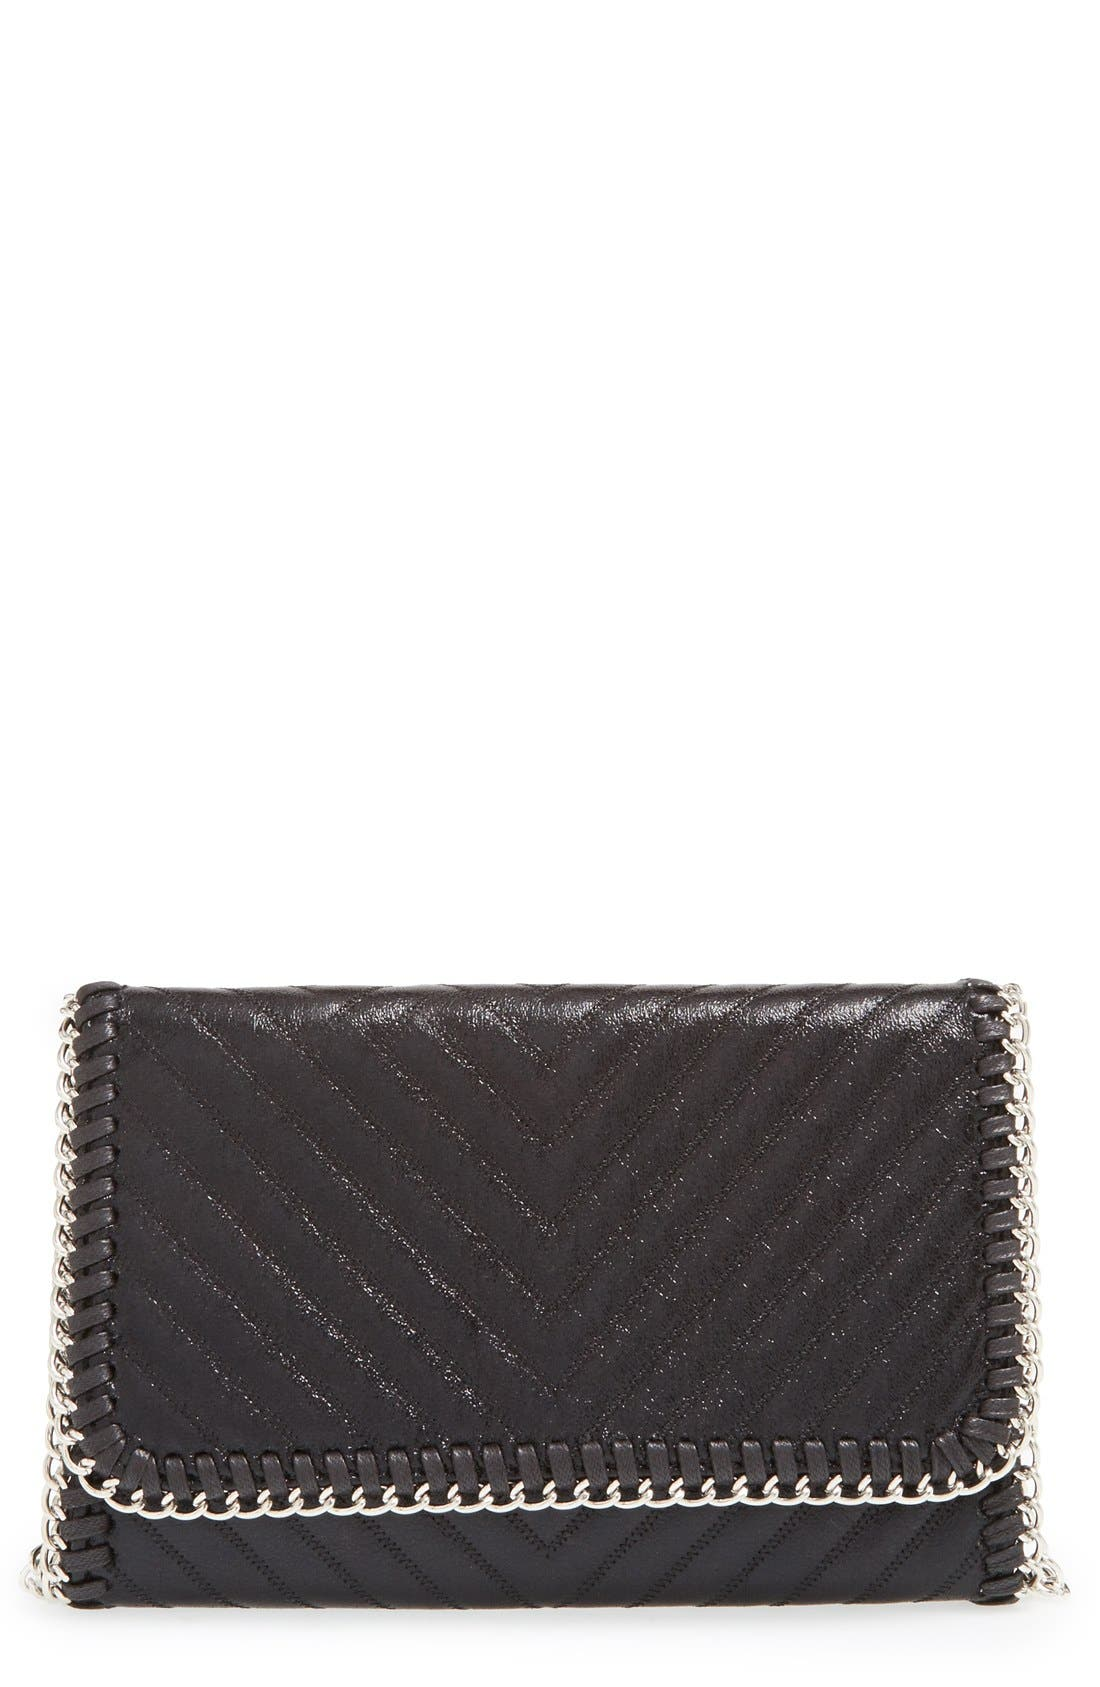 CHELSEA28 Quilted Mini Clutch, Main, color, 001